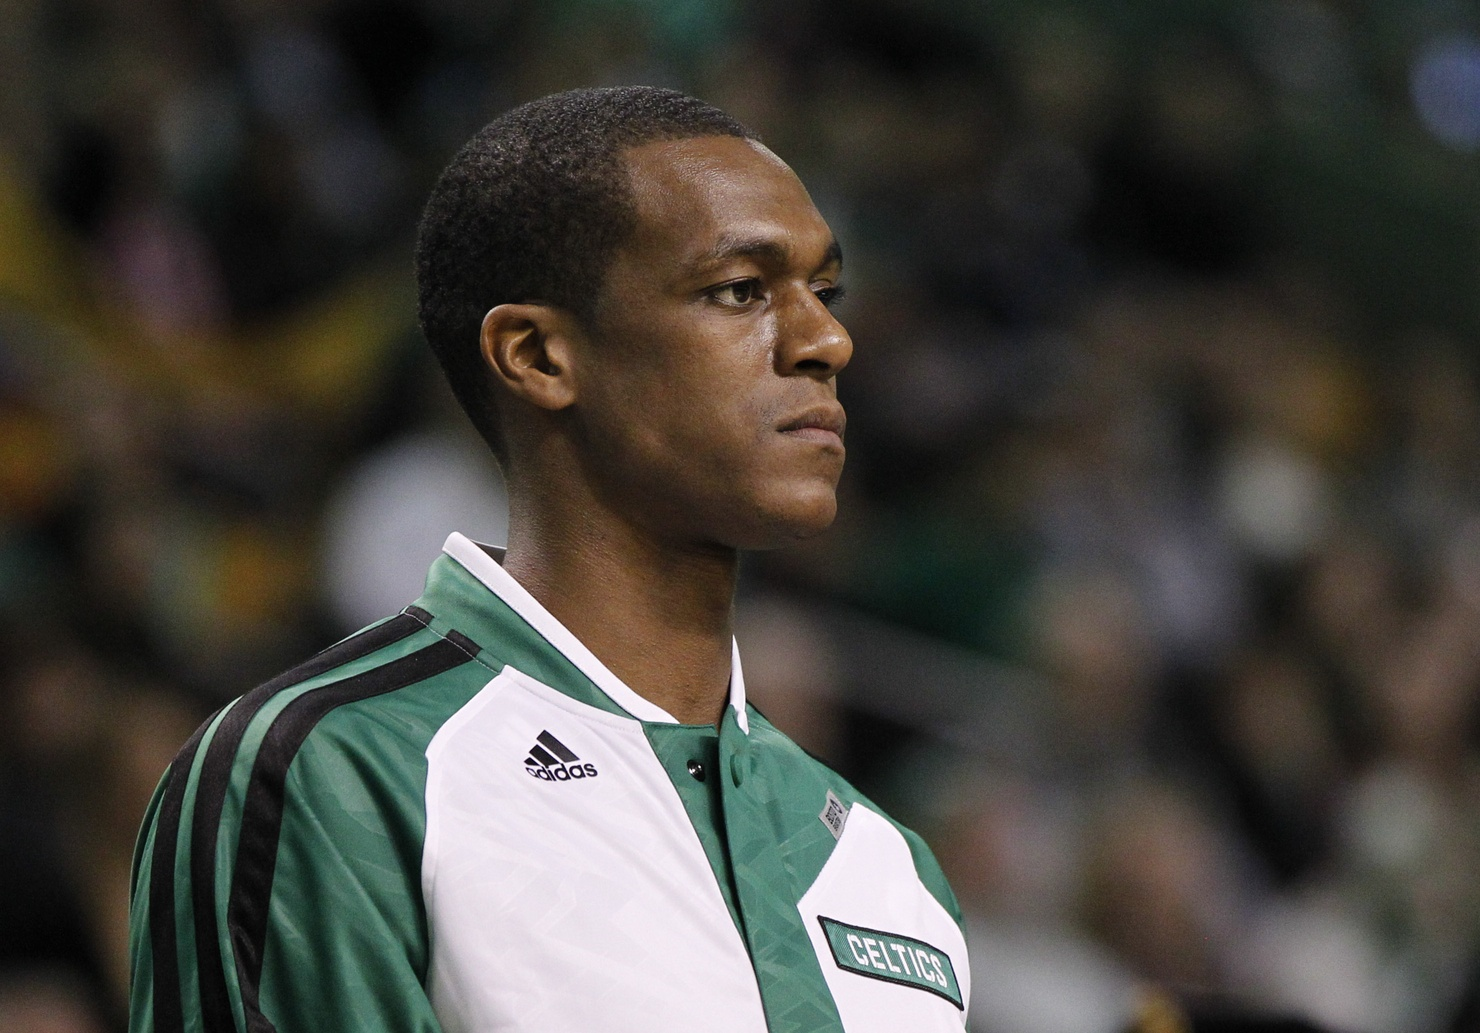 Contract Forecast: Rajon Rondo